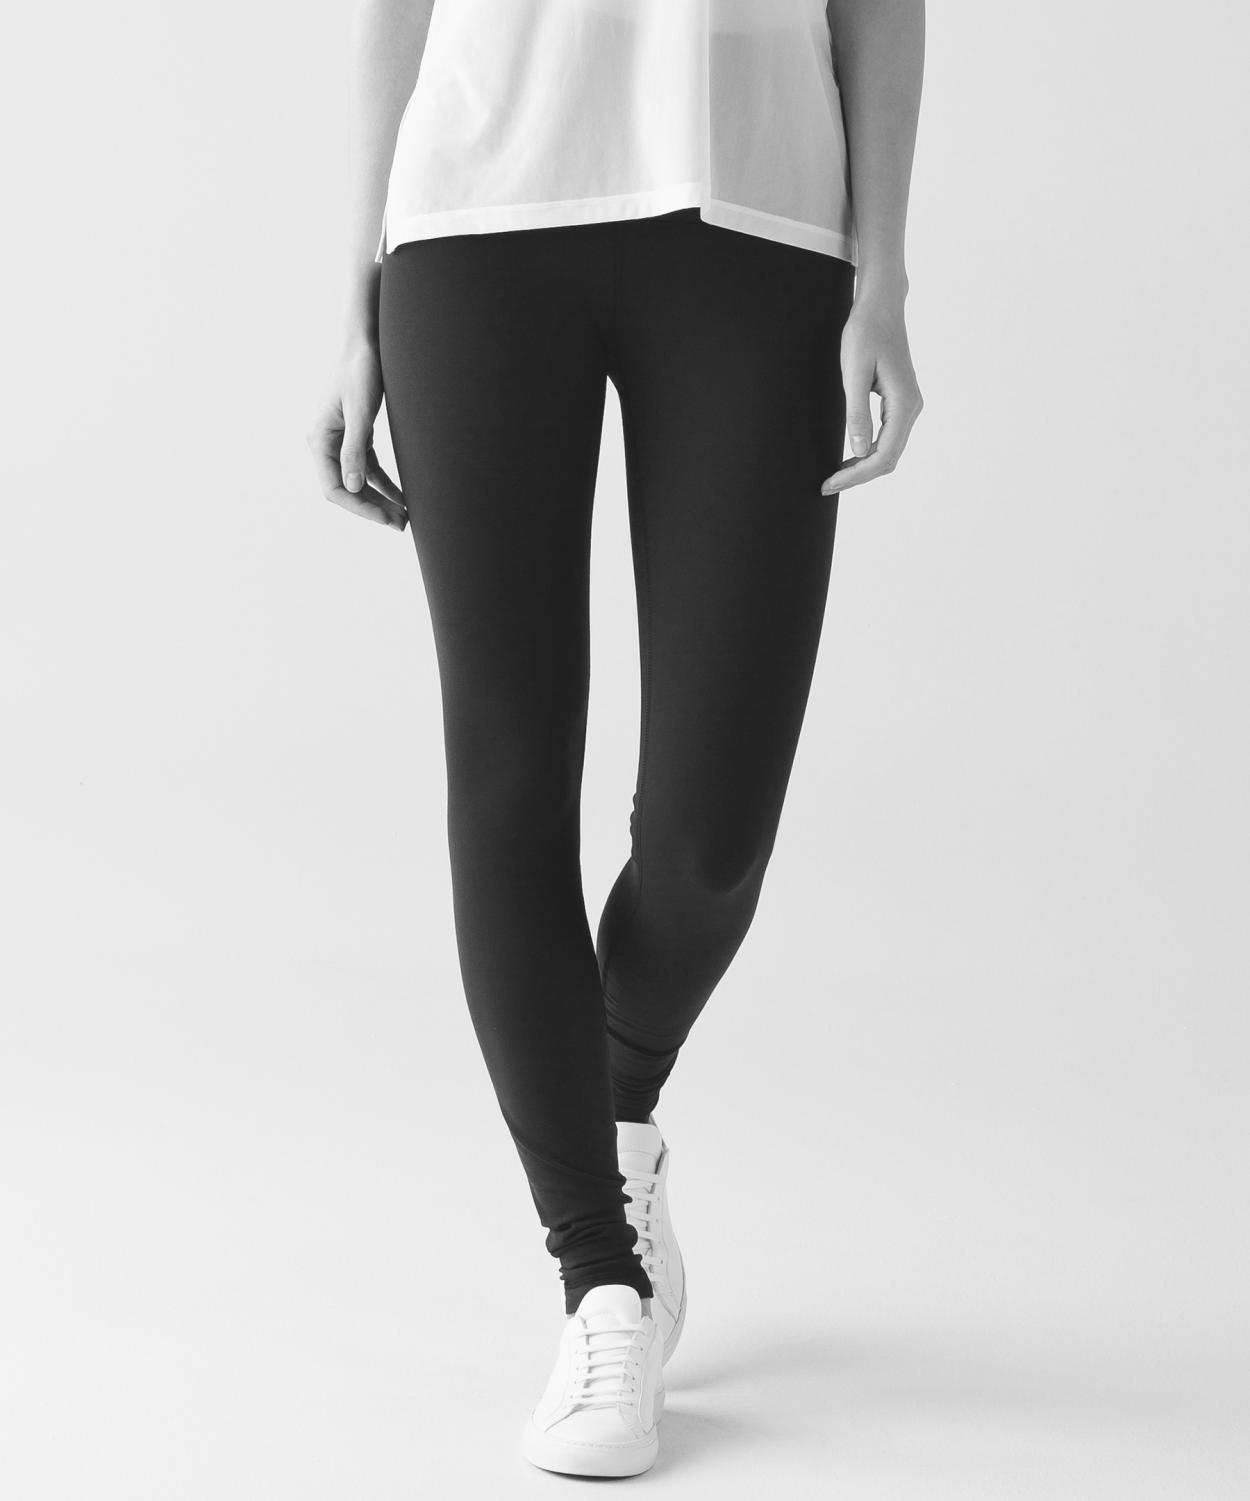 Lulu Lemon has a variety of leggings that come in different colors, lengths, and sizes. They are perfect for any season.